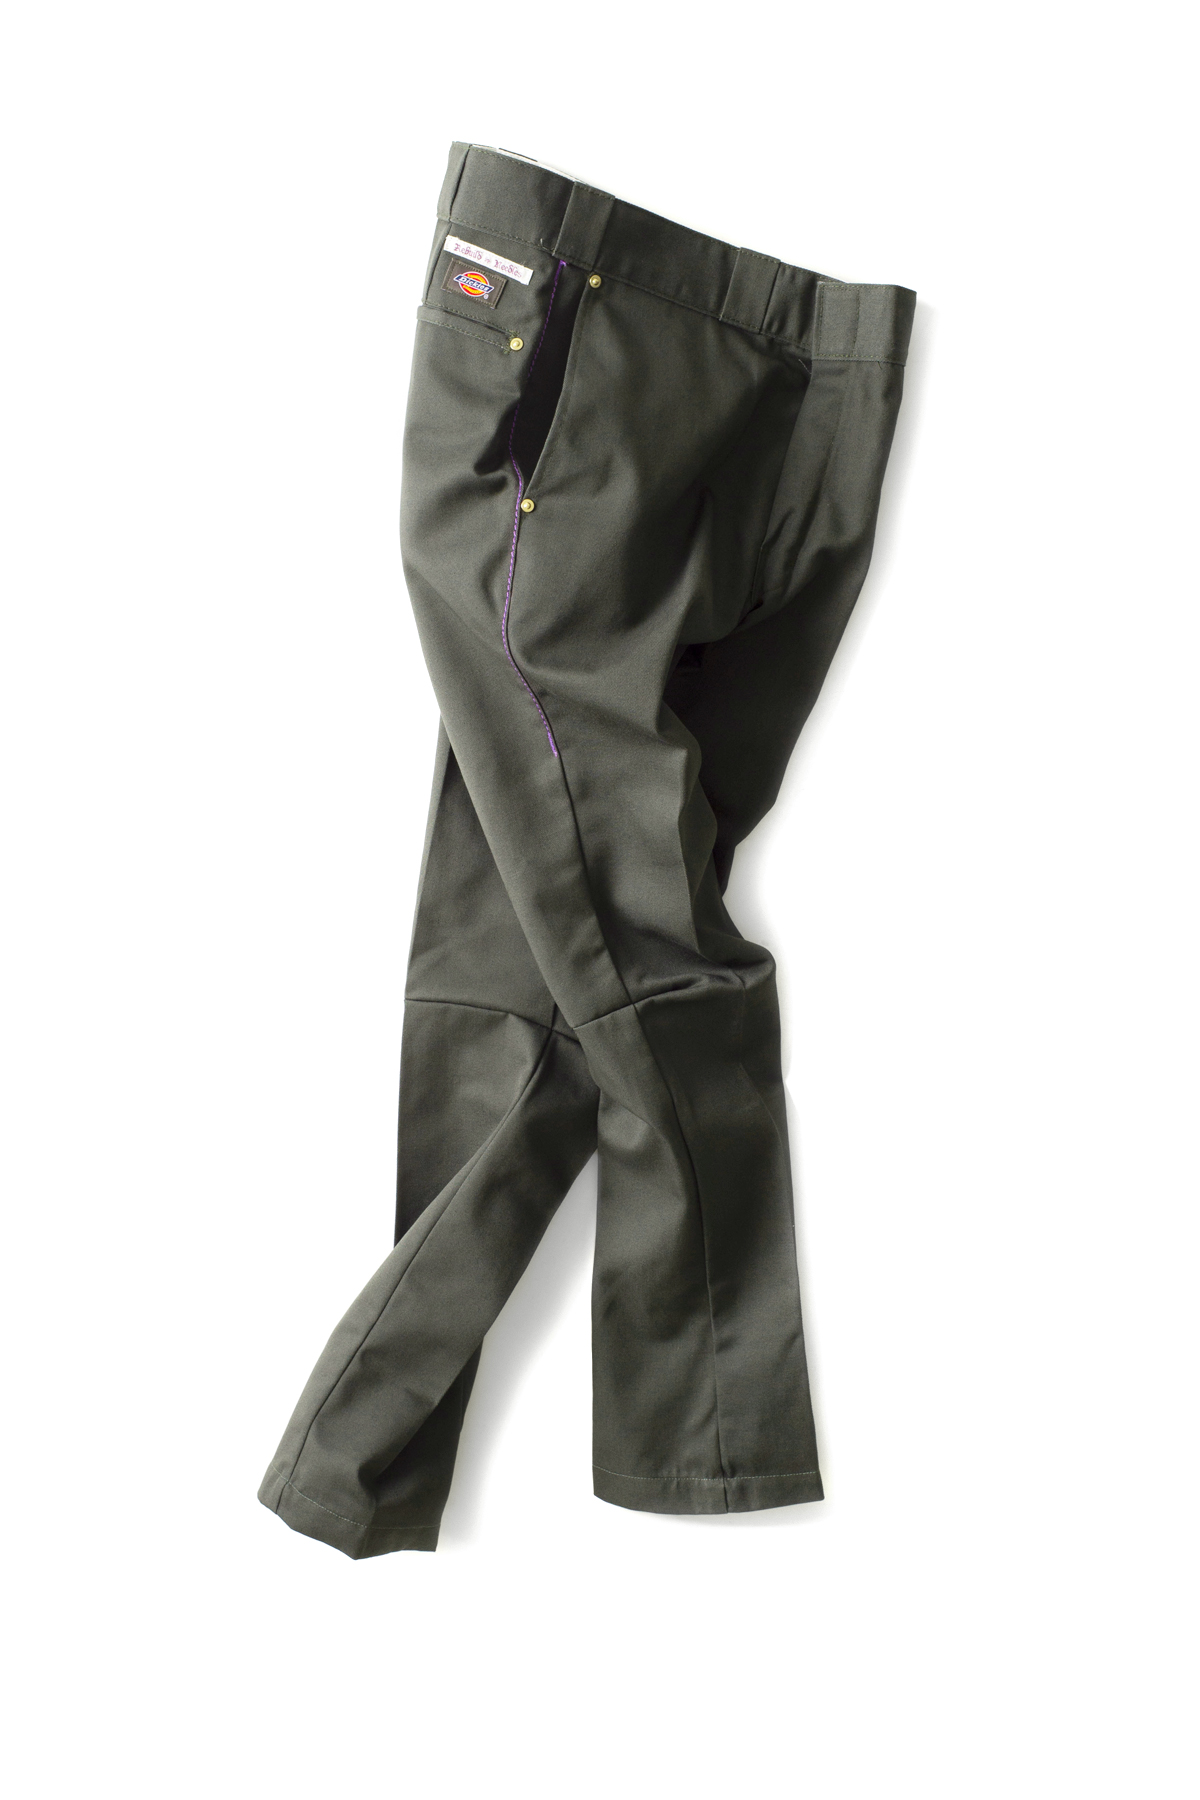 NEEDLES : Dimension Slim Dickies 874 (Olive)